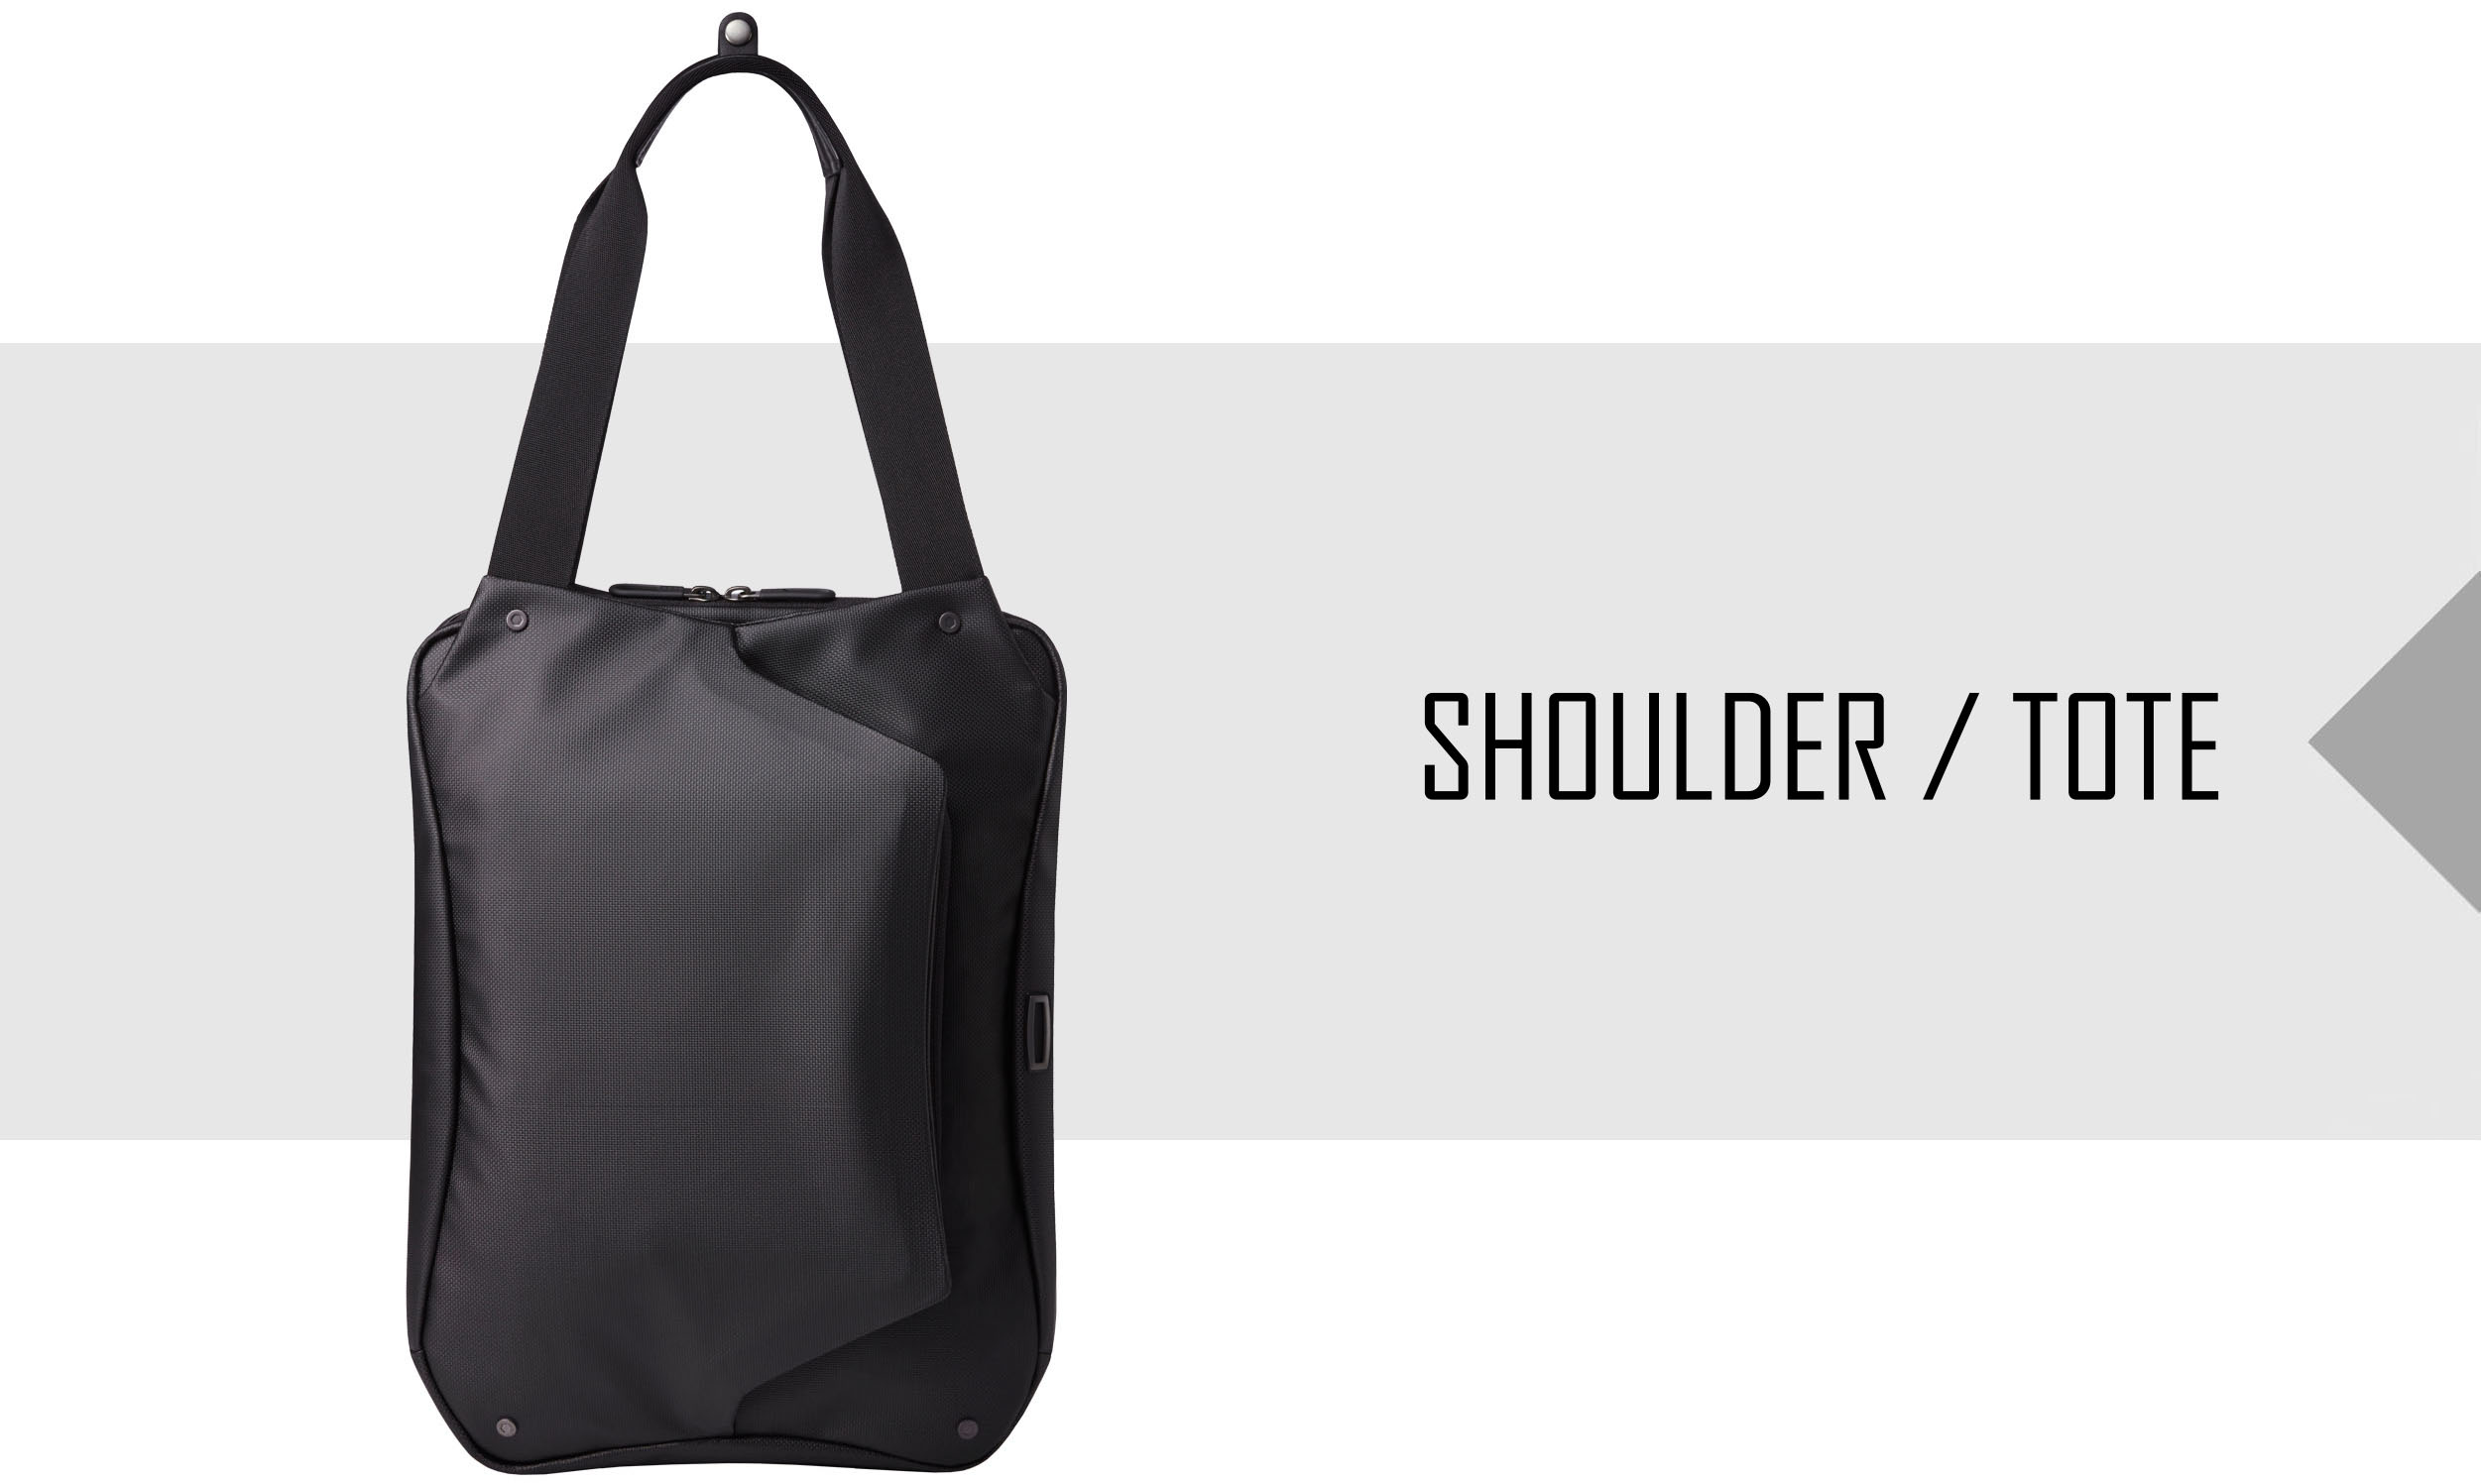 shoulder&tote-1